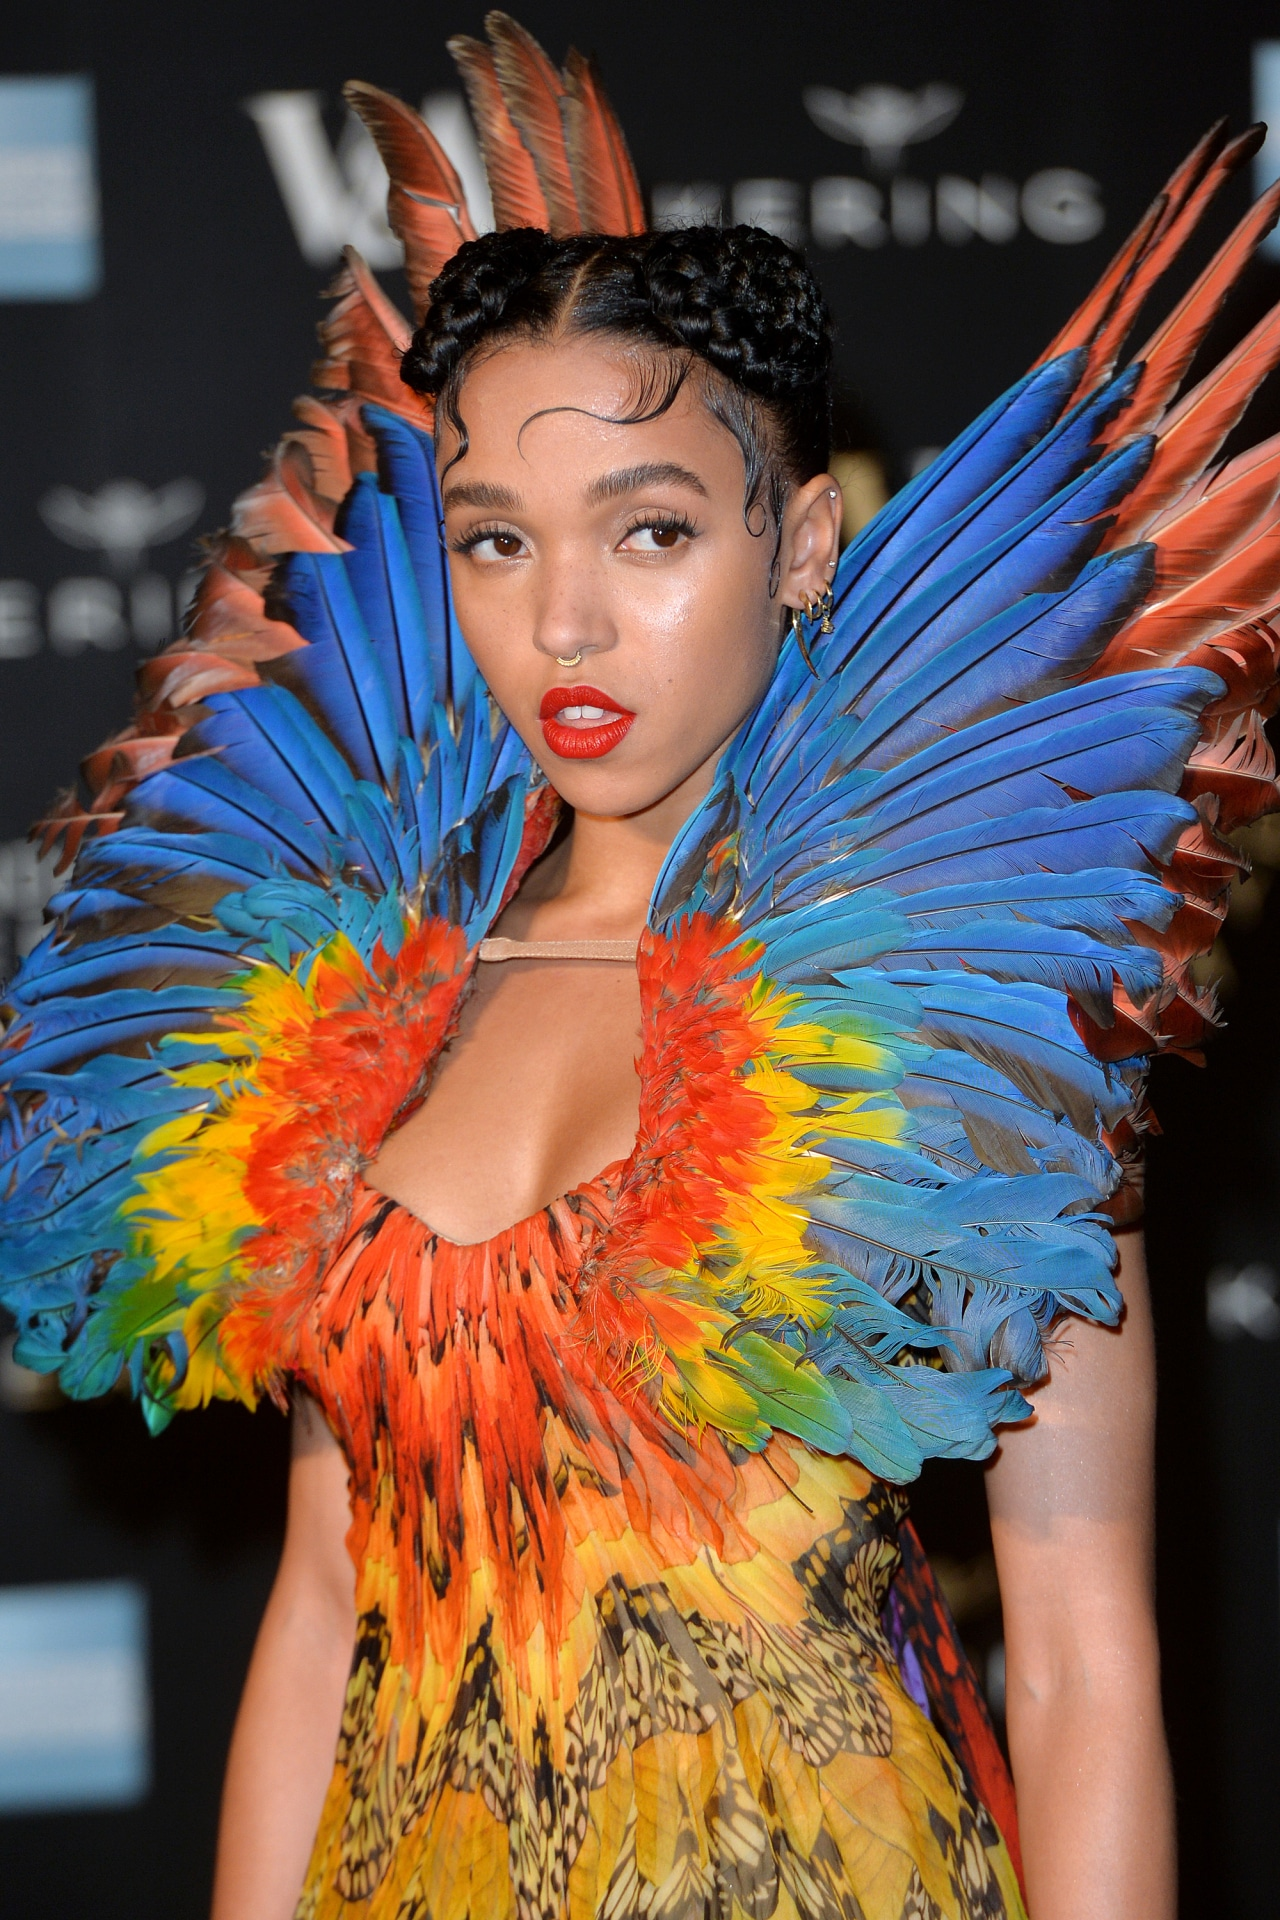 FKA Twigs attends a private viewing of the Alexander McQueen: Savage Beauty exhibition at Victoria & Albert Museum on March 12, 2015 in London, England. Image credit: Anthony Harvey/Getty Images